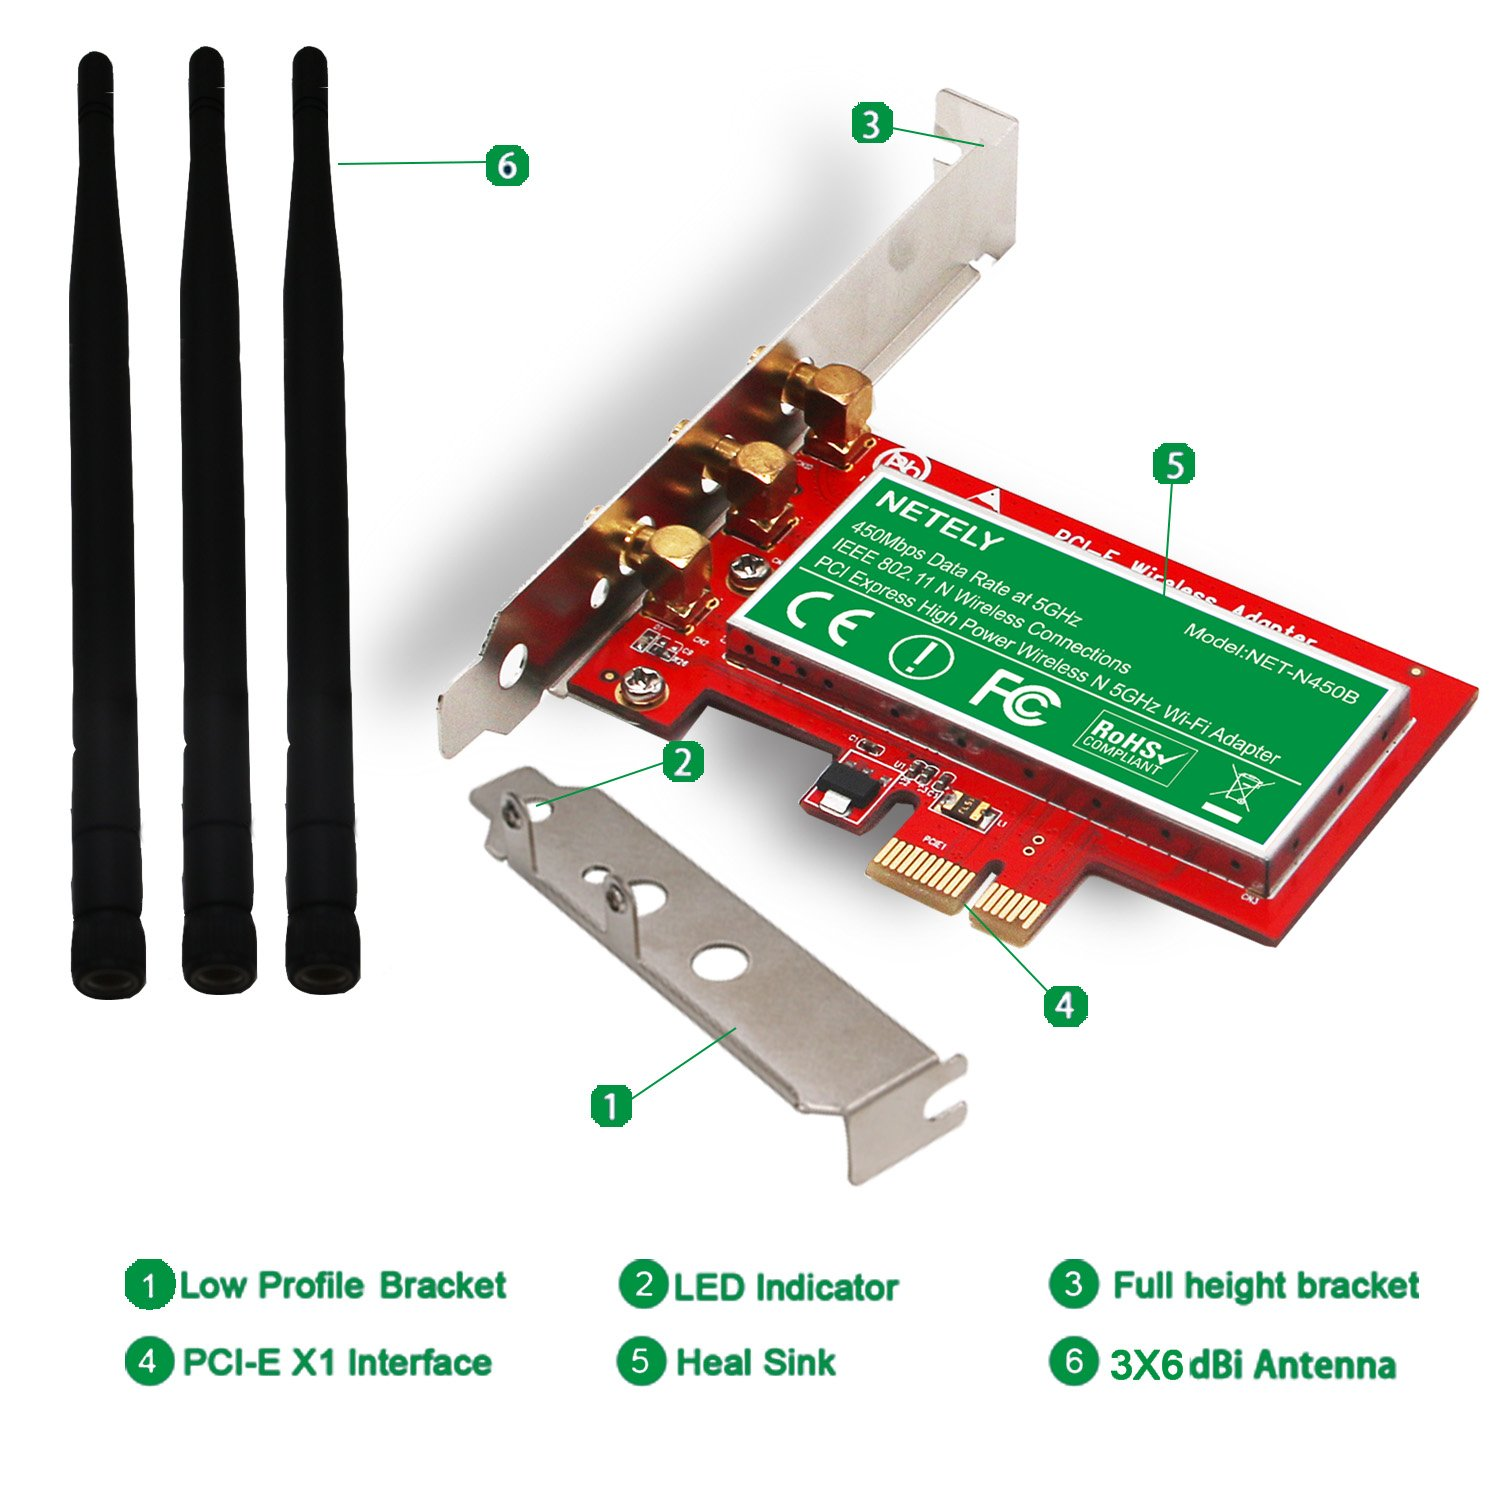 PCI-E Wi-Fi Adapter for PCs or Working Stations-PCIE Wireless Network Card-Qualcomm Atheros Wireless Network Adapter NET-N450B NETELY Wireless N 5GHz 450Mbps 3X3MIMO High Power PCI Express